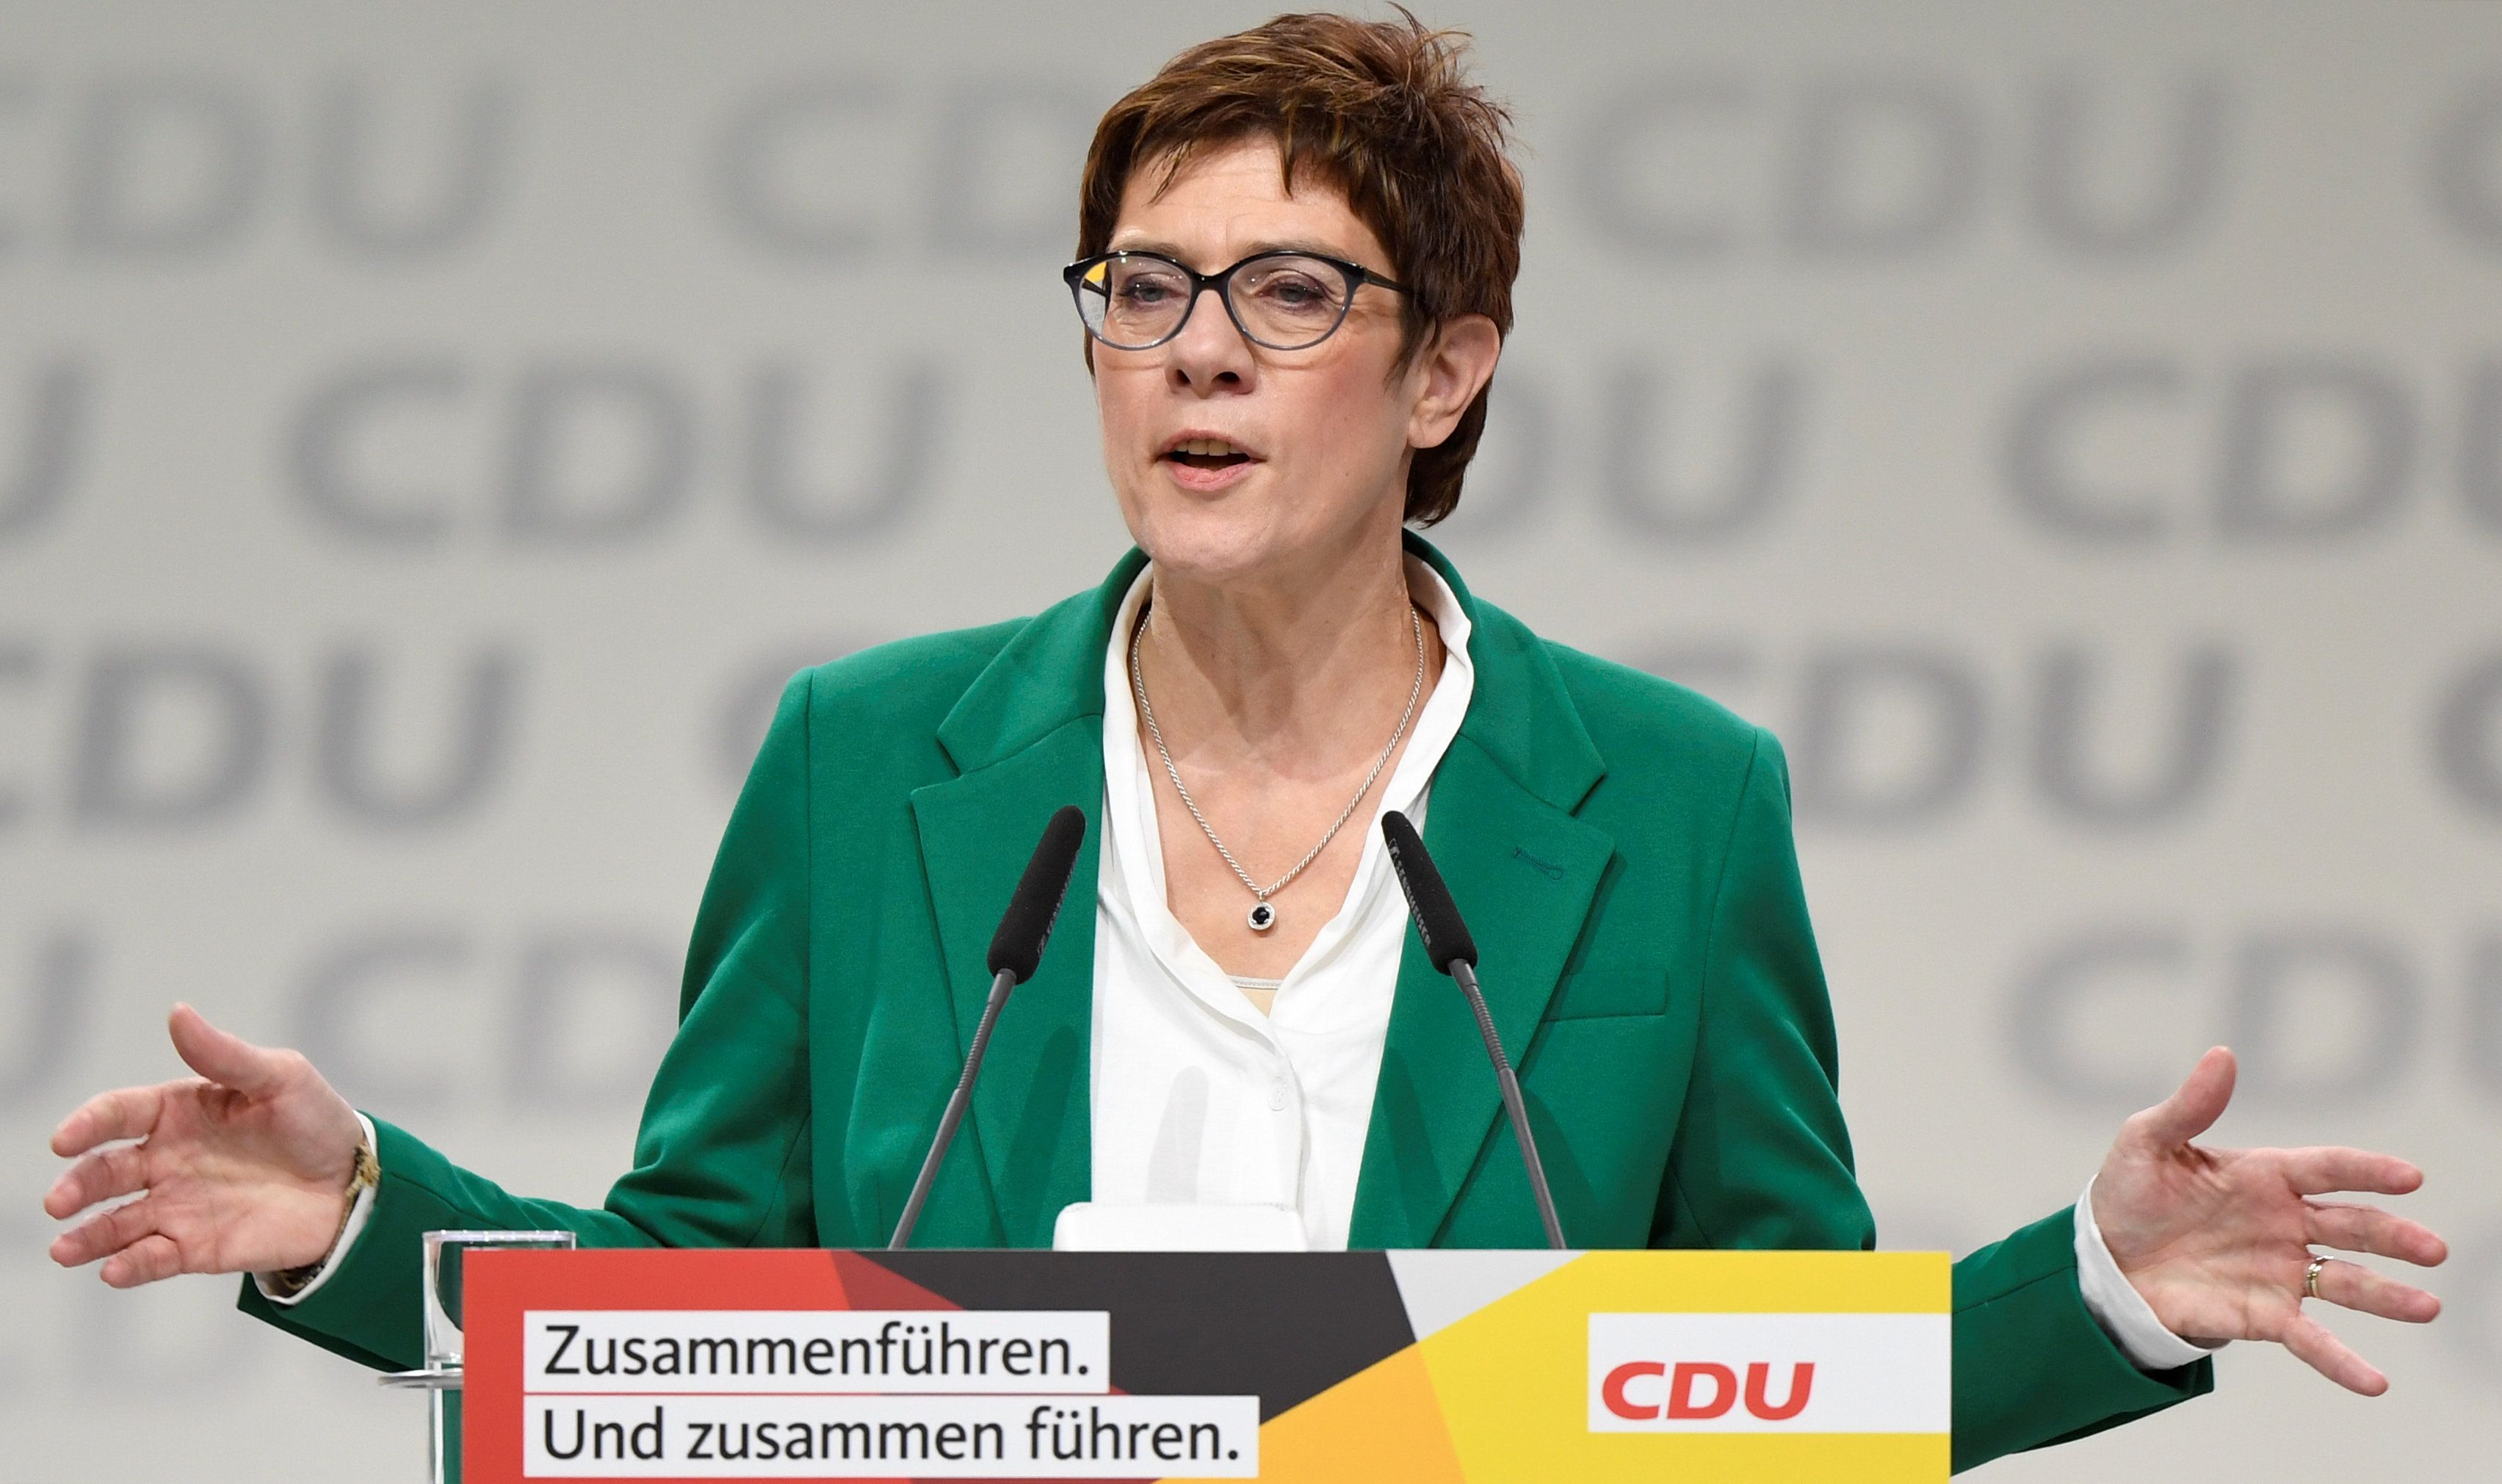 Annegret Kramp-Karrenbauer was a key signatory of the letter from German